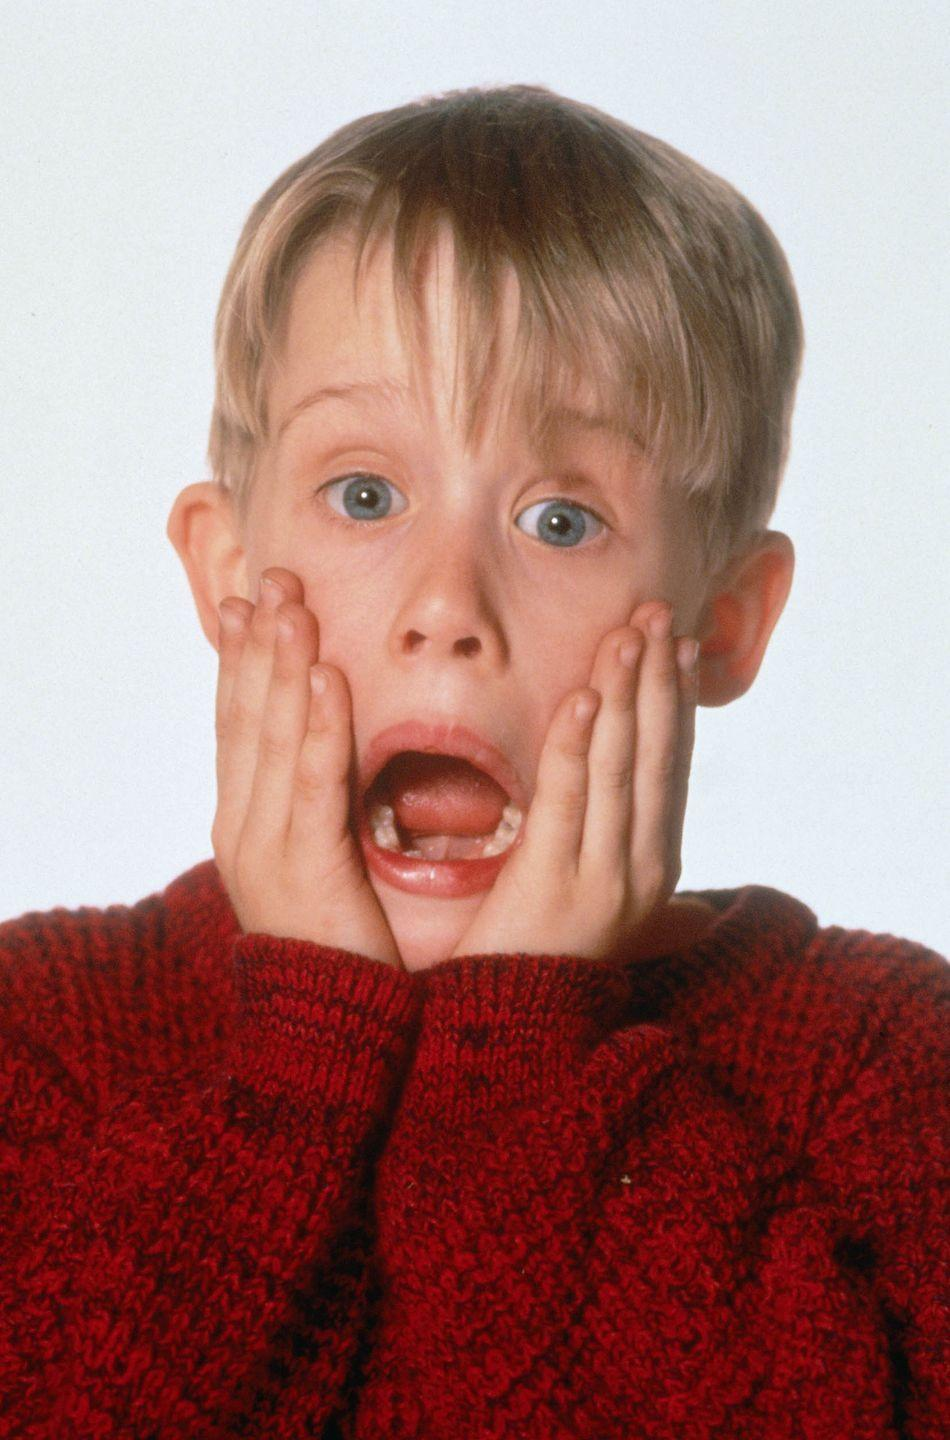 <p>With roles in Uncle Buck and Richie Rich and arguably the best beloved festive classic, Home Alone Macaulay Culkin is undoubtably one of the most iconic '90s child stars, especially for his role as Kevin McAllister.</p>